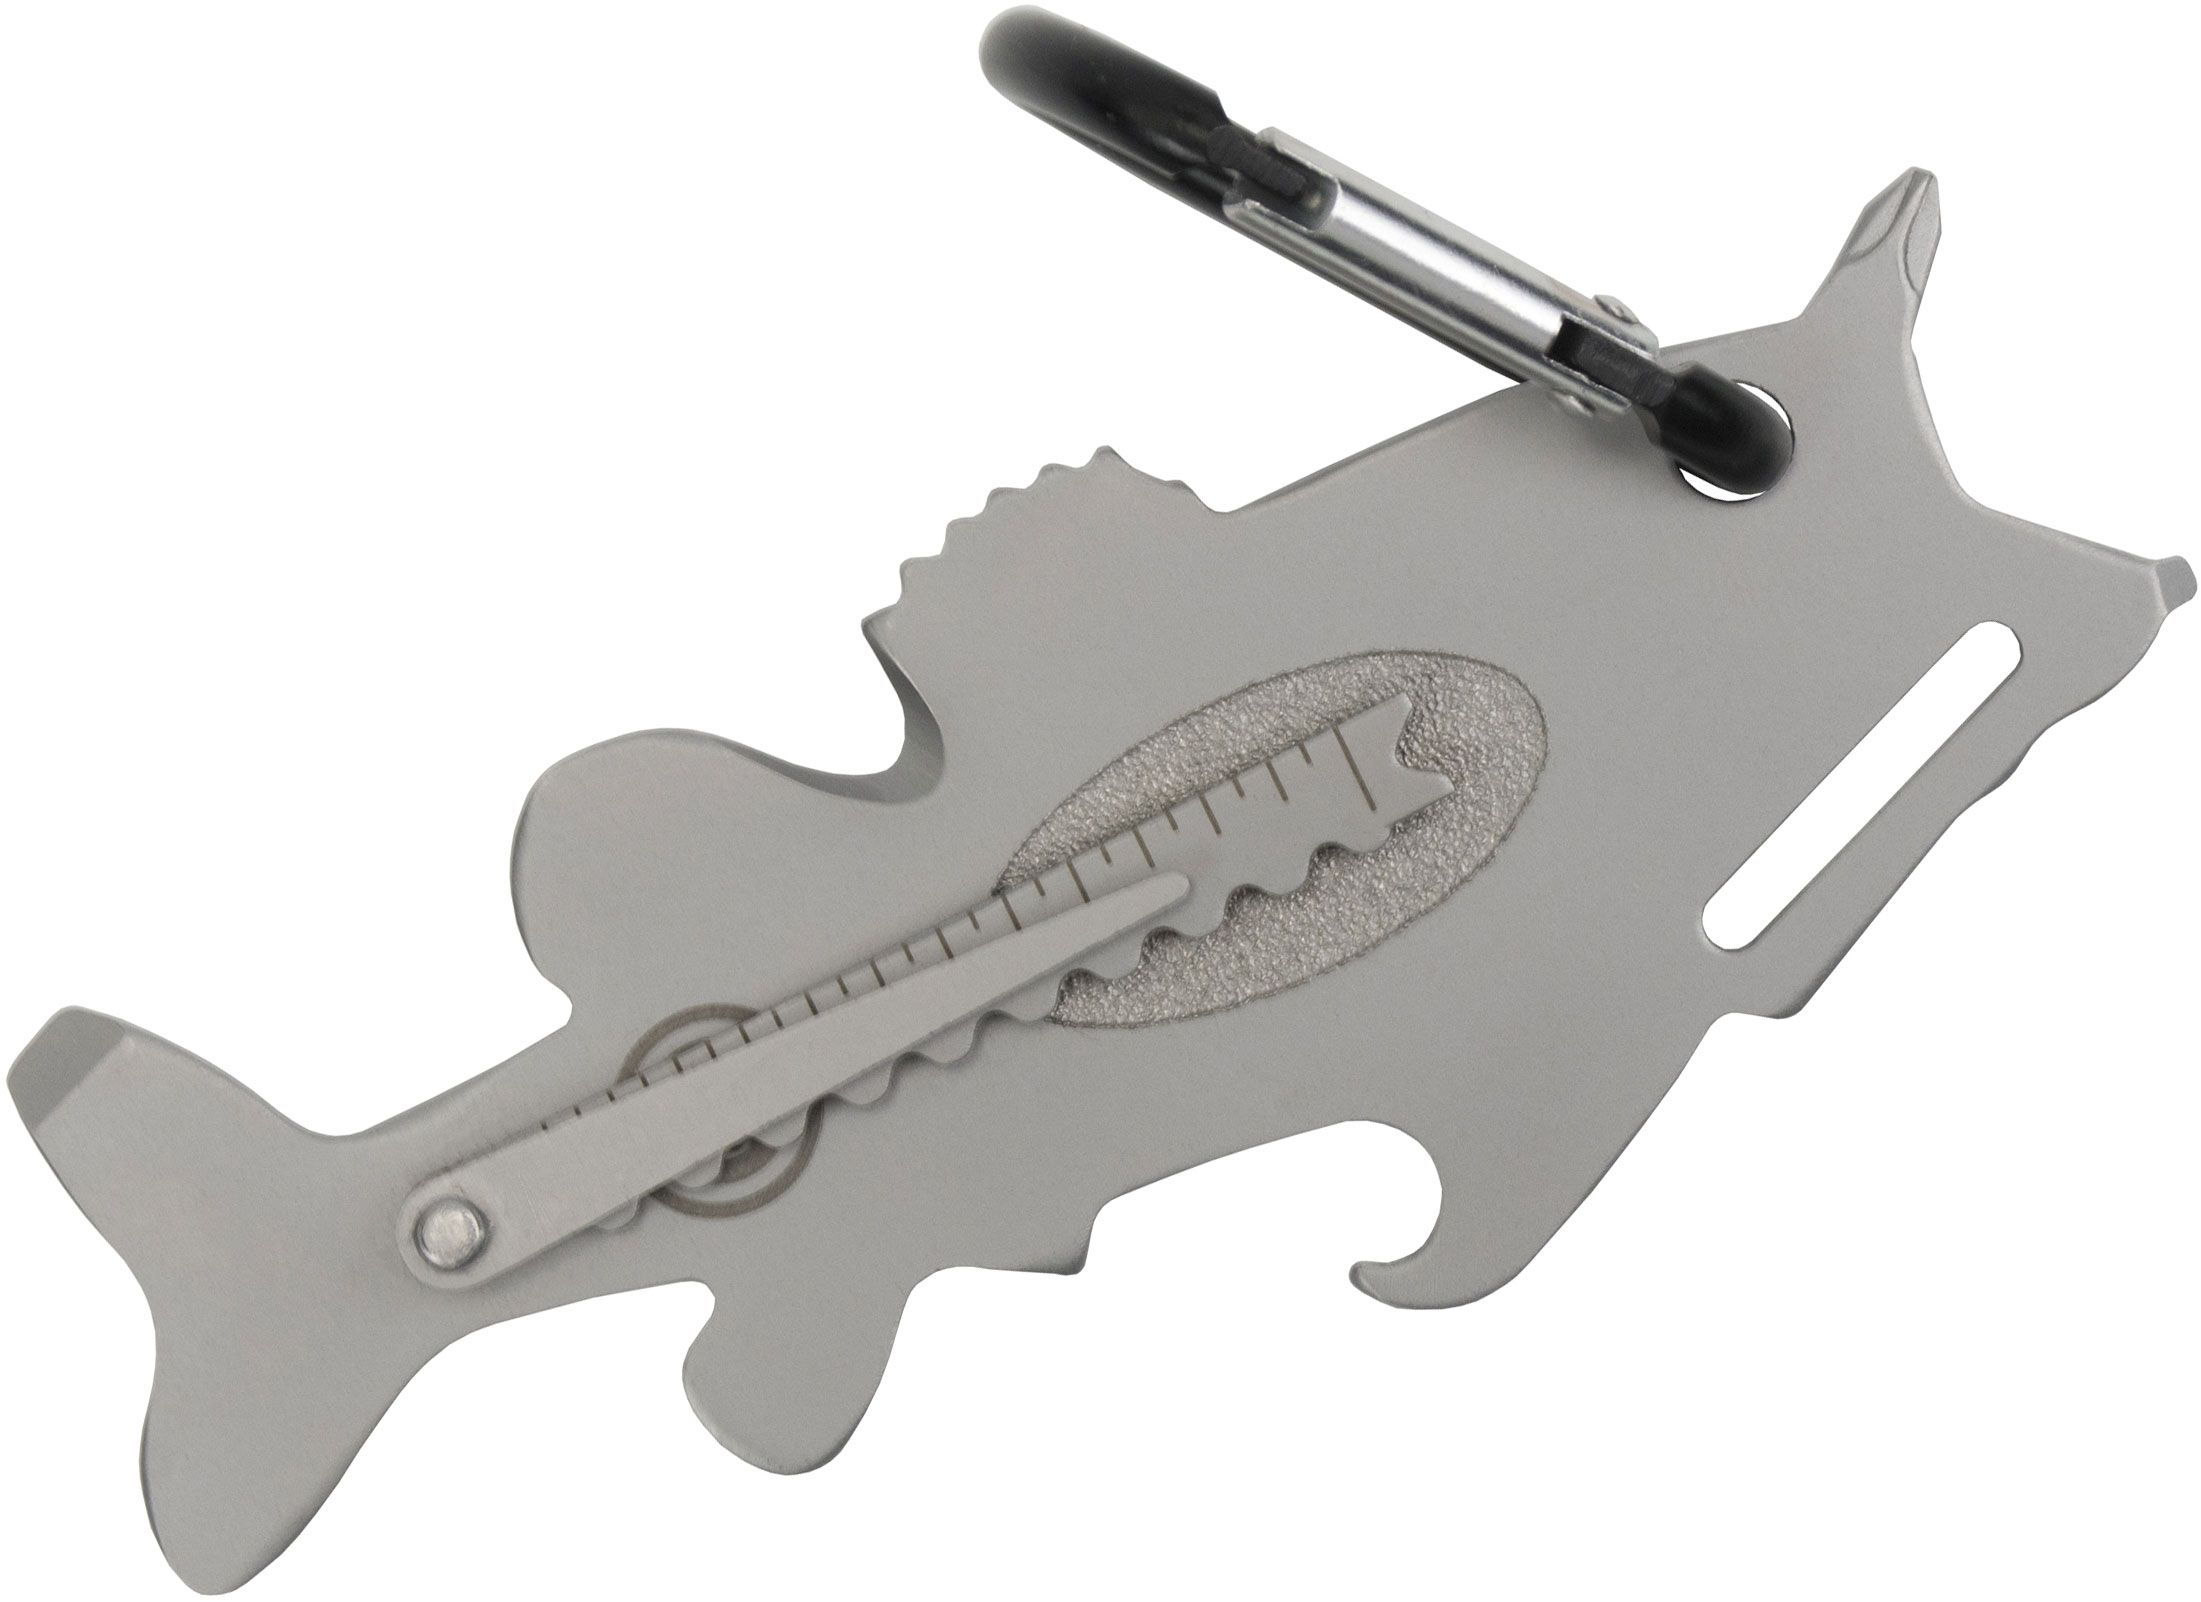 UST Ultimate Survival Tool a Long Bass Pocket-Size Multi-Tool